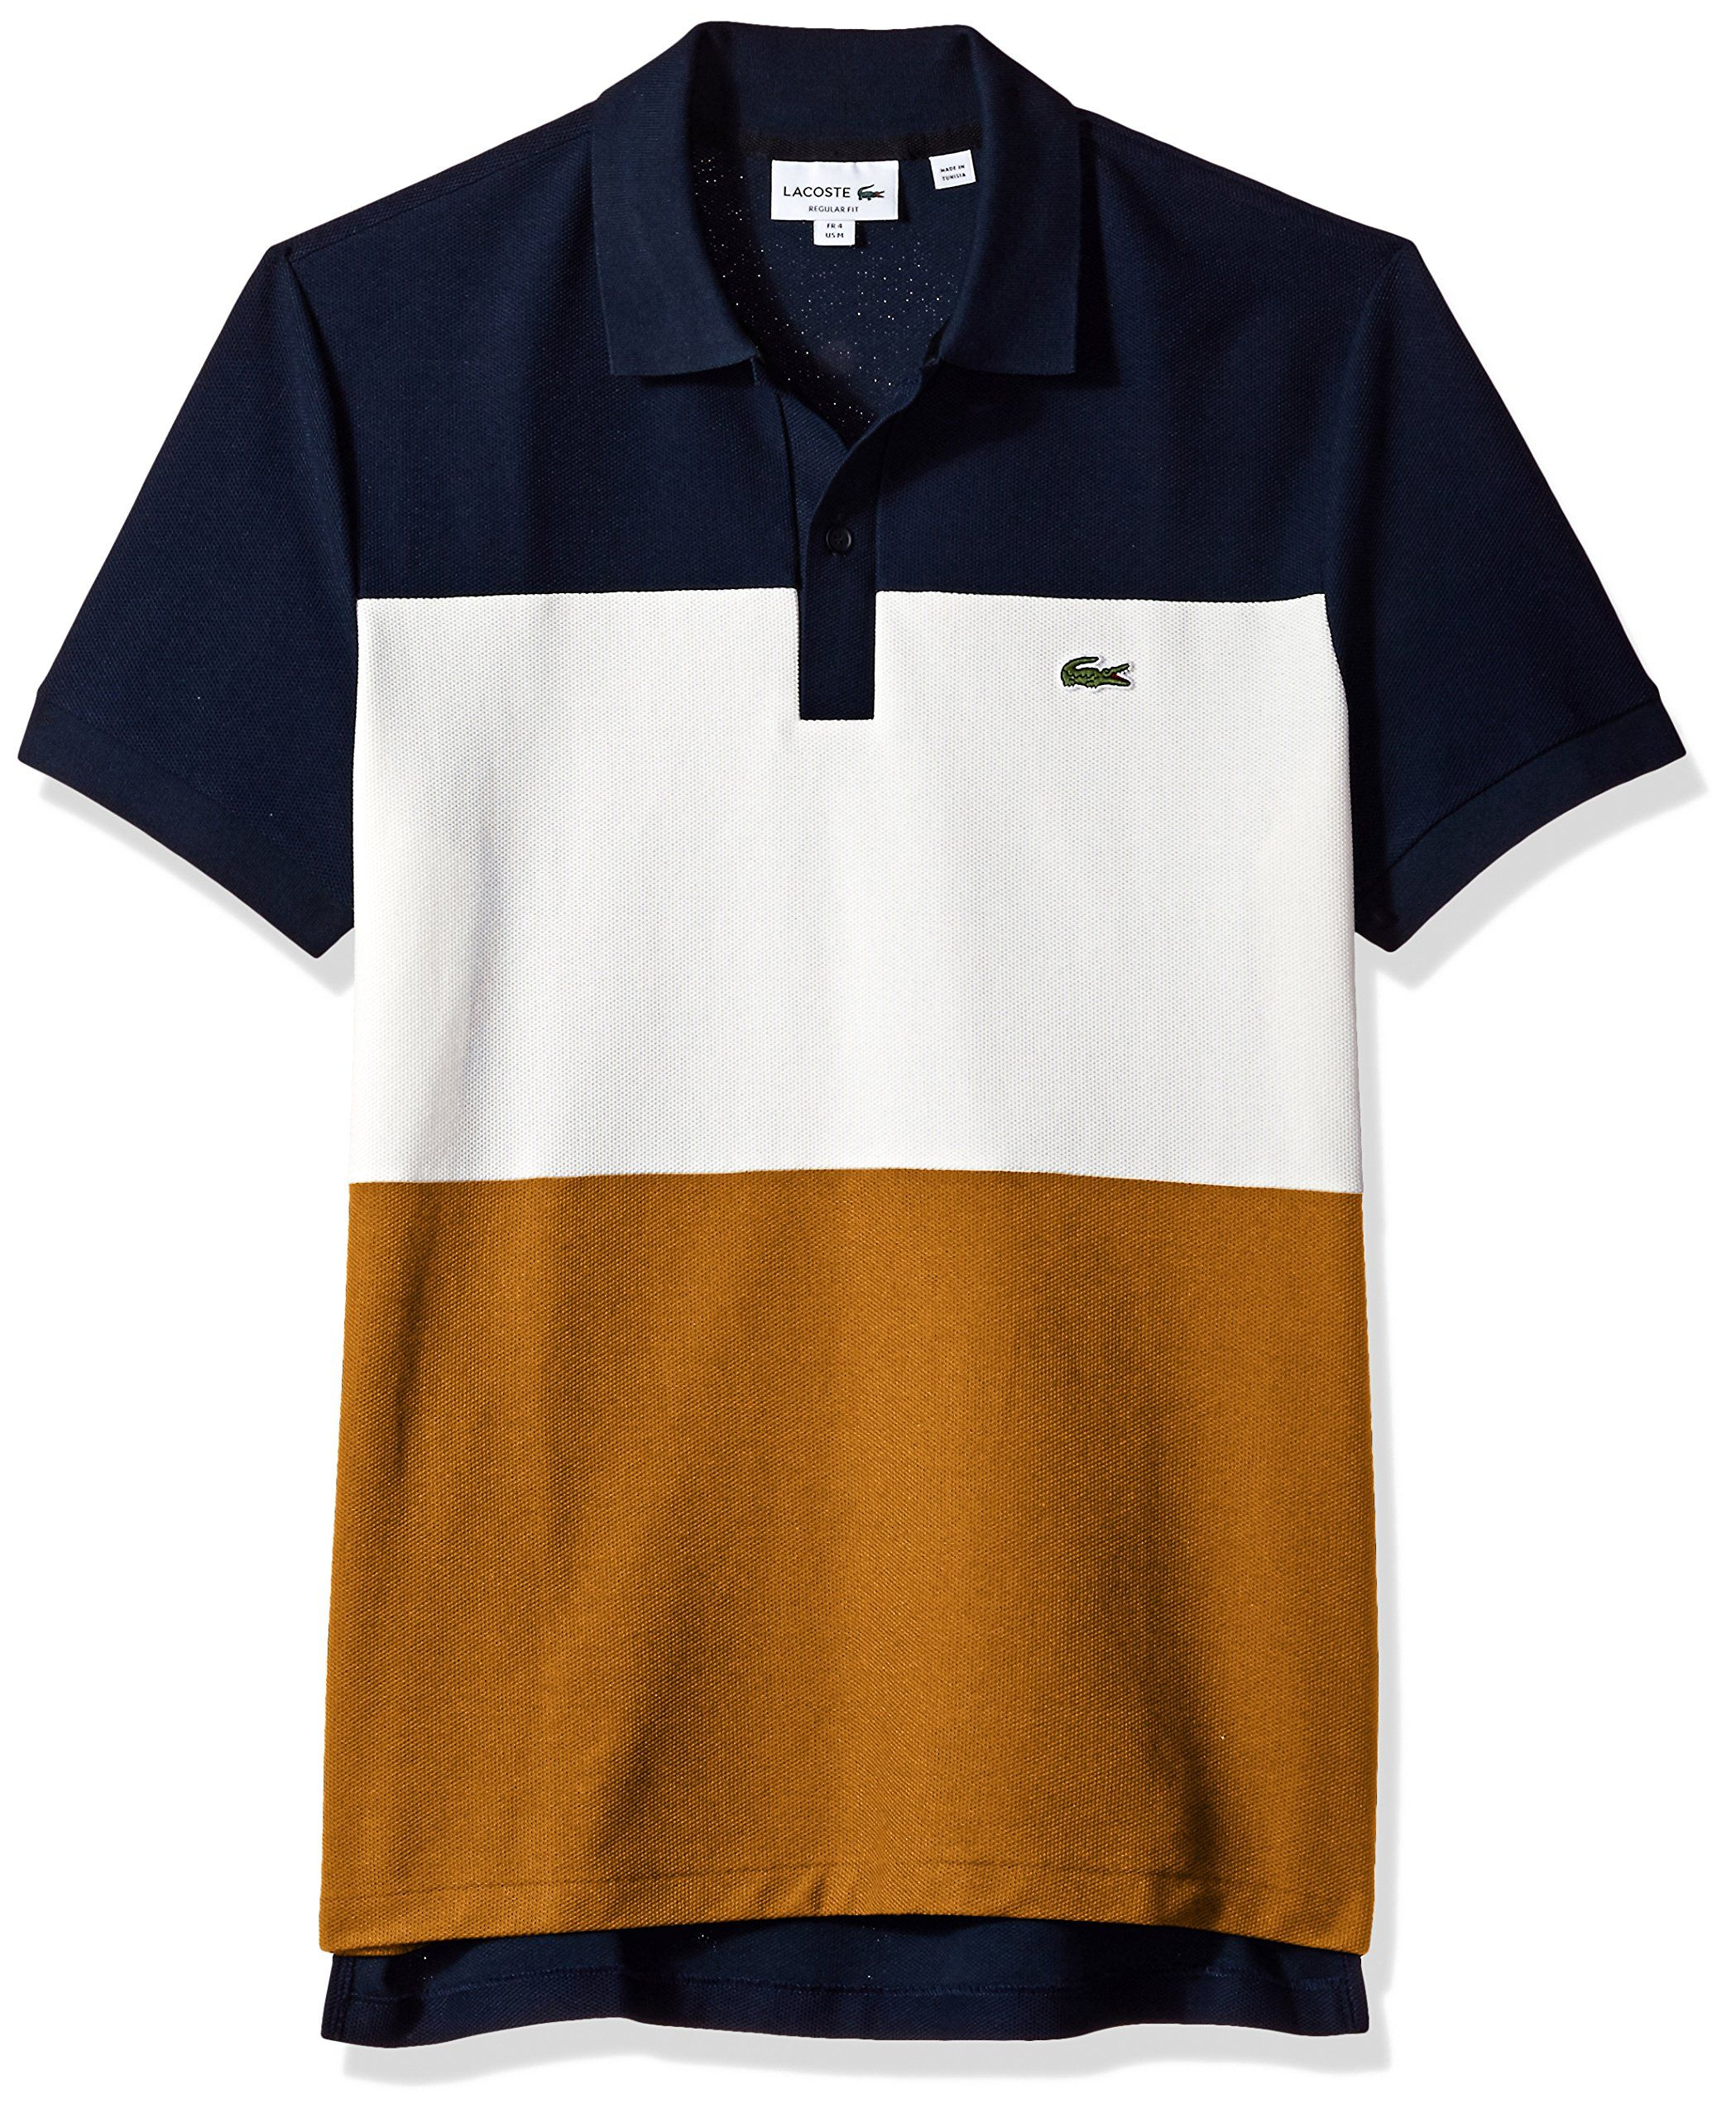 Lacoste Mens Short Sleeve Noppe Pique Striped Color Block Polo Navy  Blue Flour Renaissance Brown 4   Check out the image by visiting the link. 7c31efaf62935